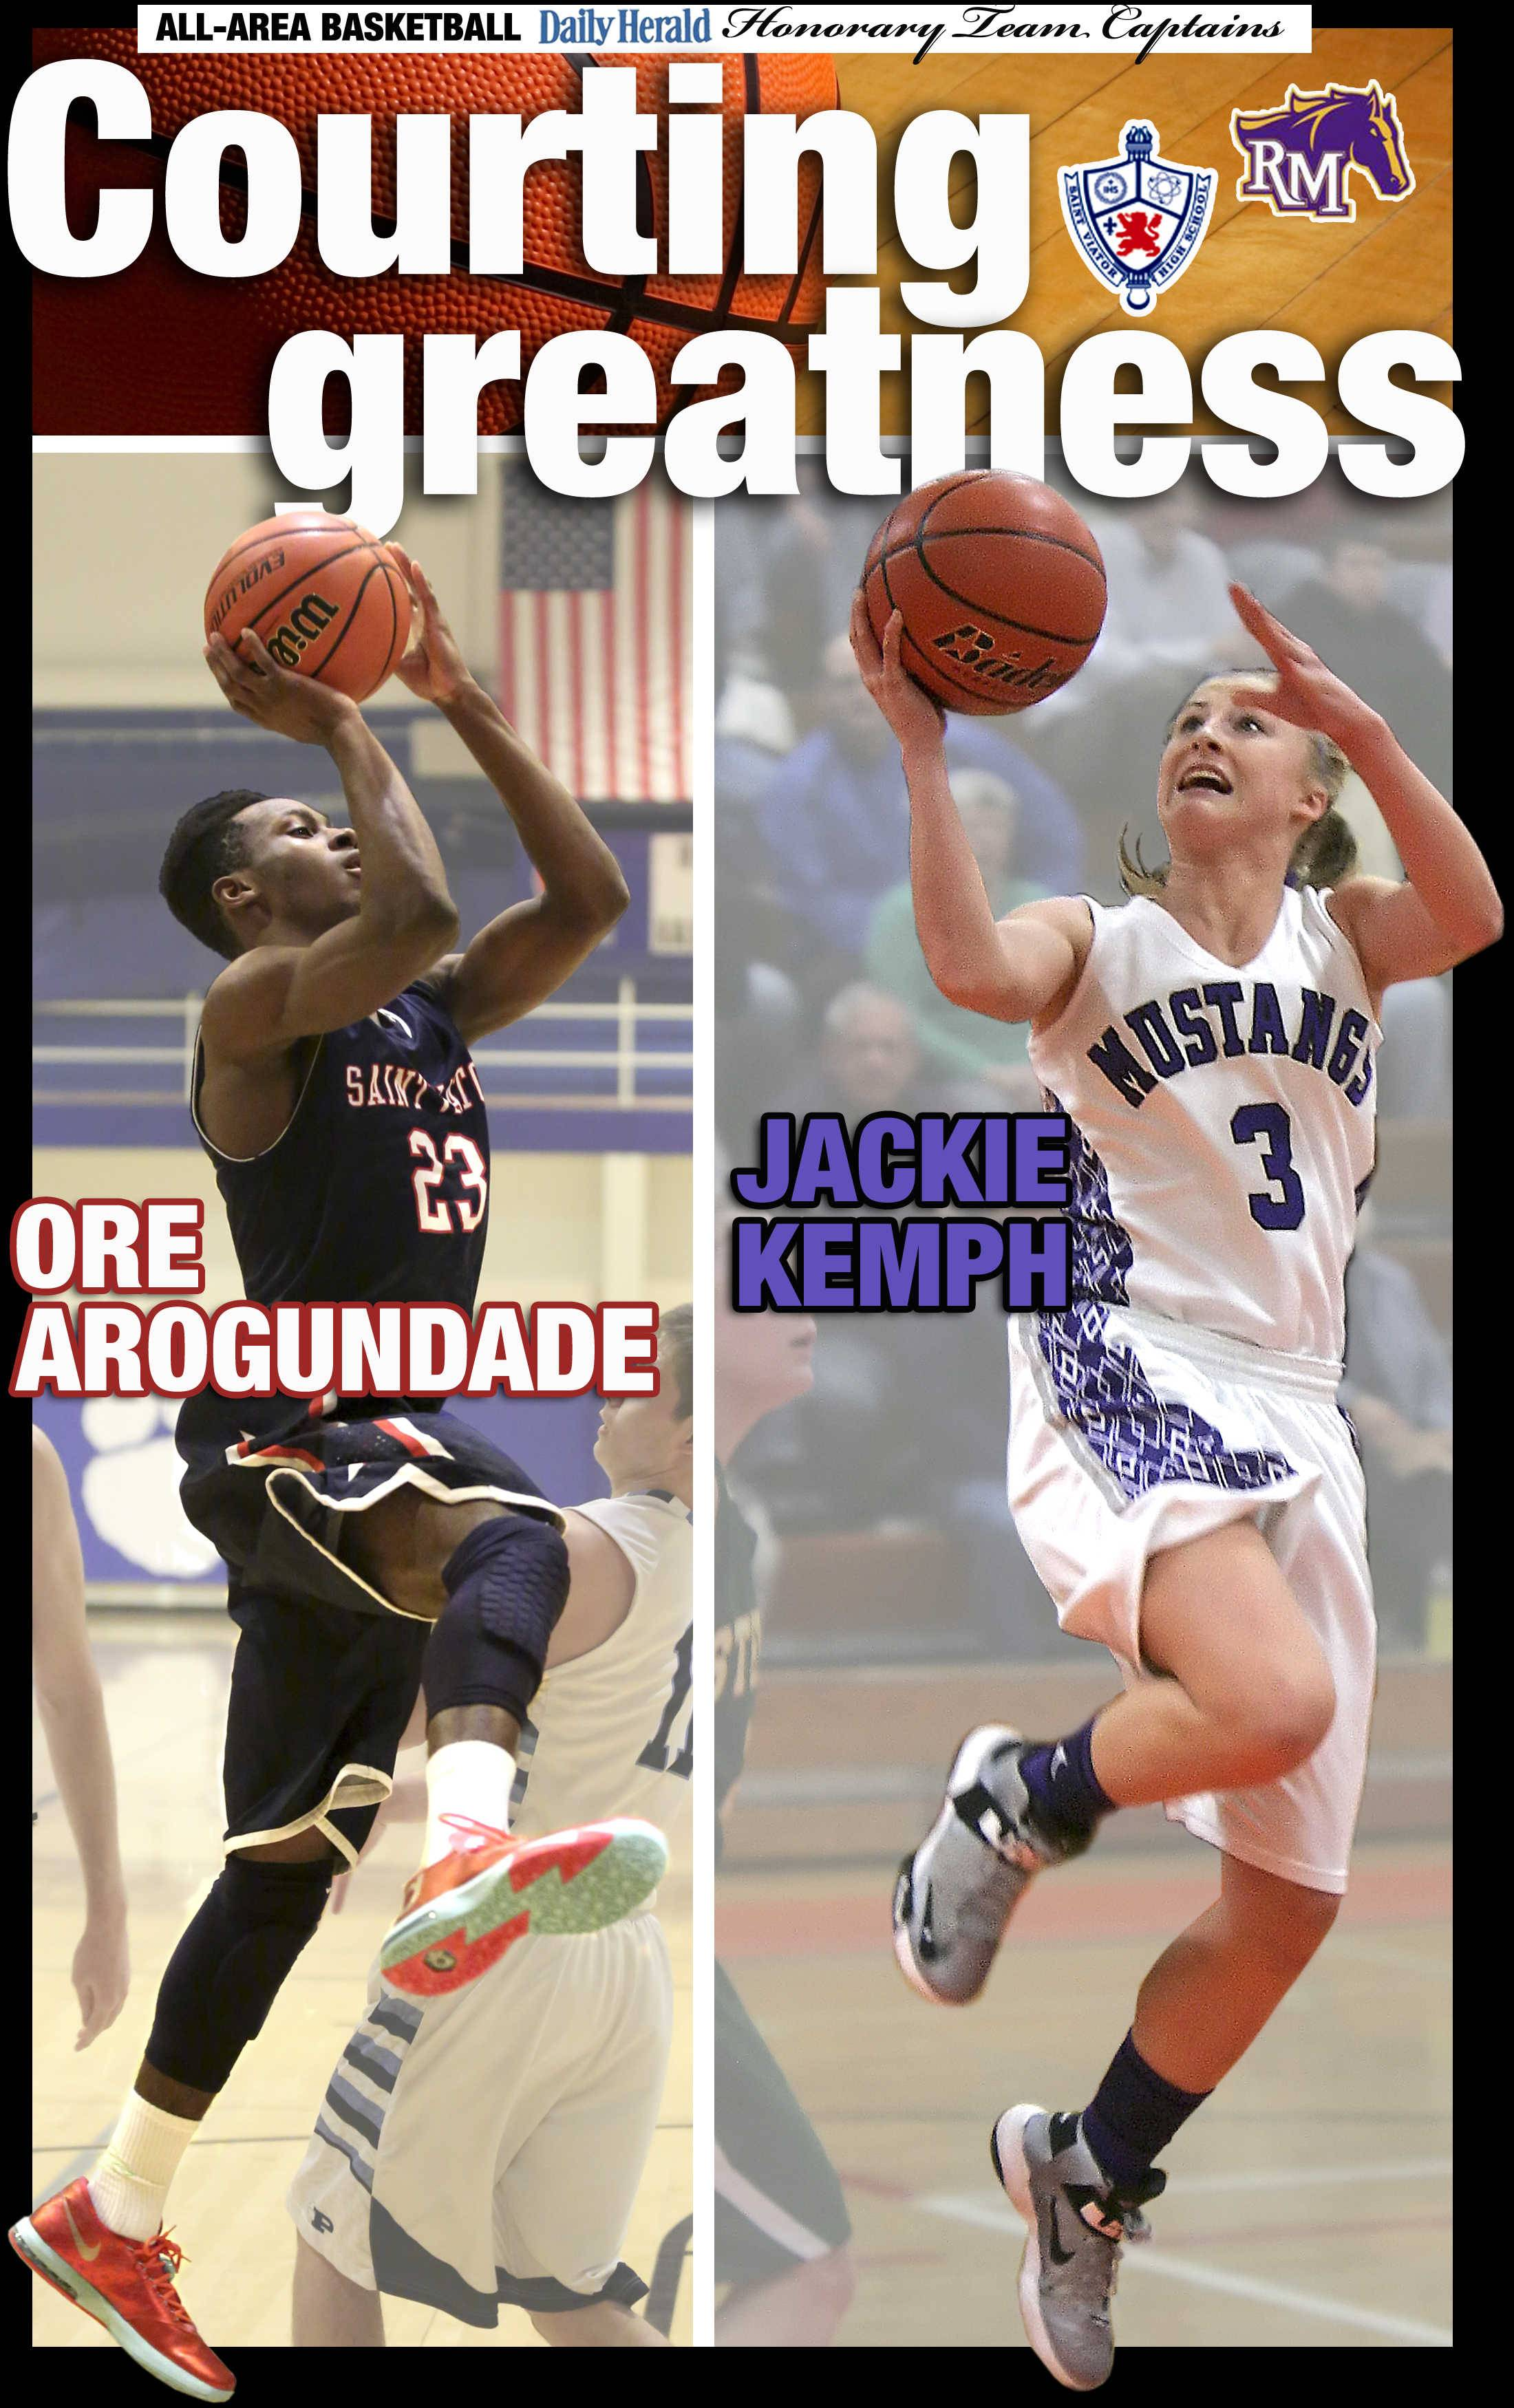 Ore Arogundade of St. Viator and Jackie Kemph of Rolling Meadows are the Daily Herald All-Area honorary team captains for basketball in the Northwest in 2014.